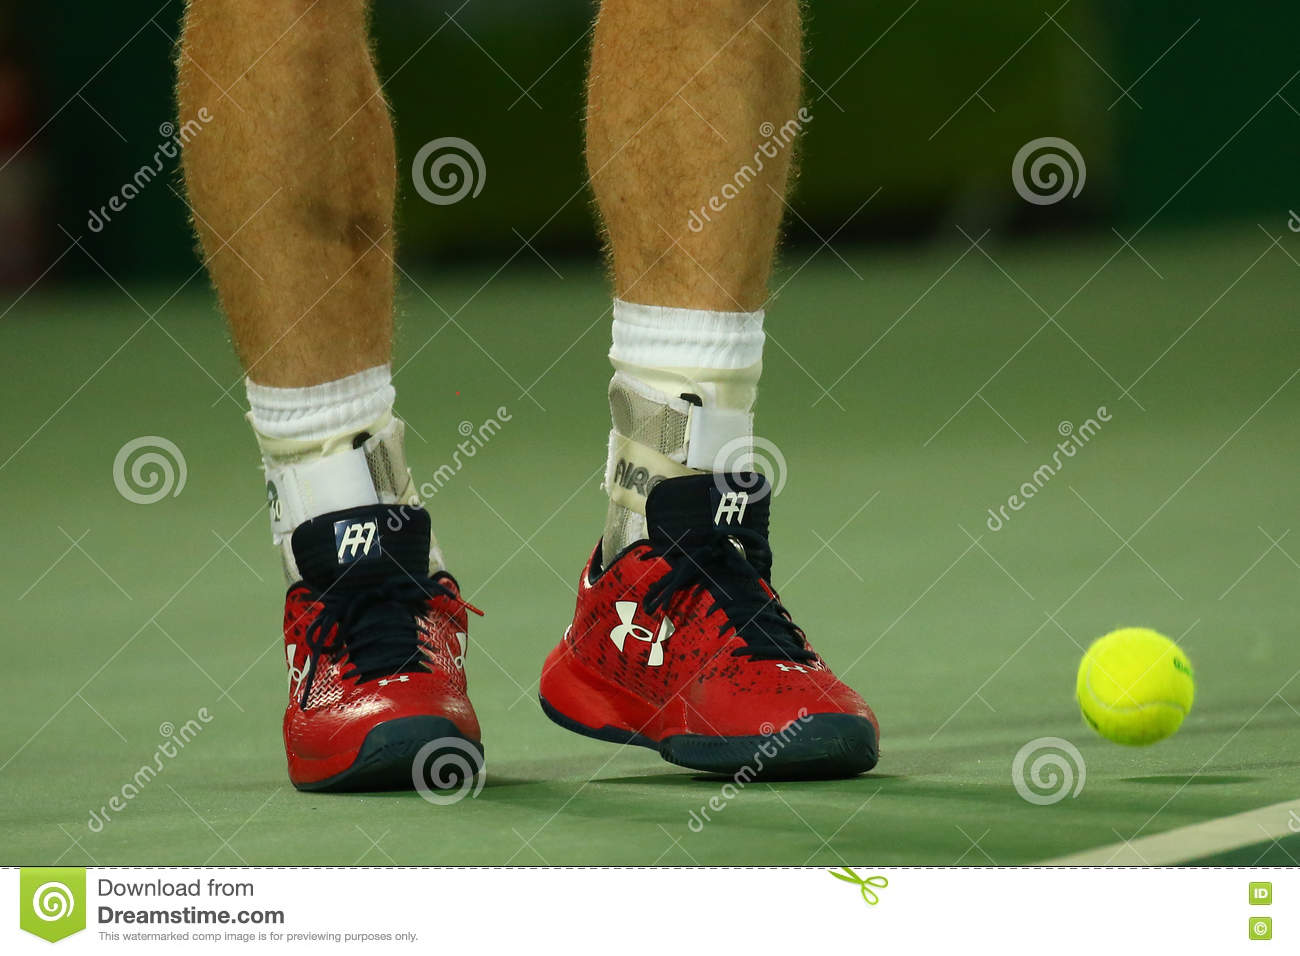 Great Under Britain Of Andy Olympic Murray Custom Champion Wears mNnvw80